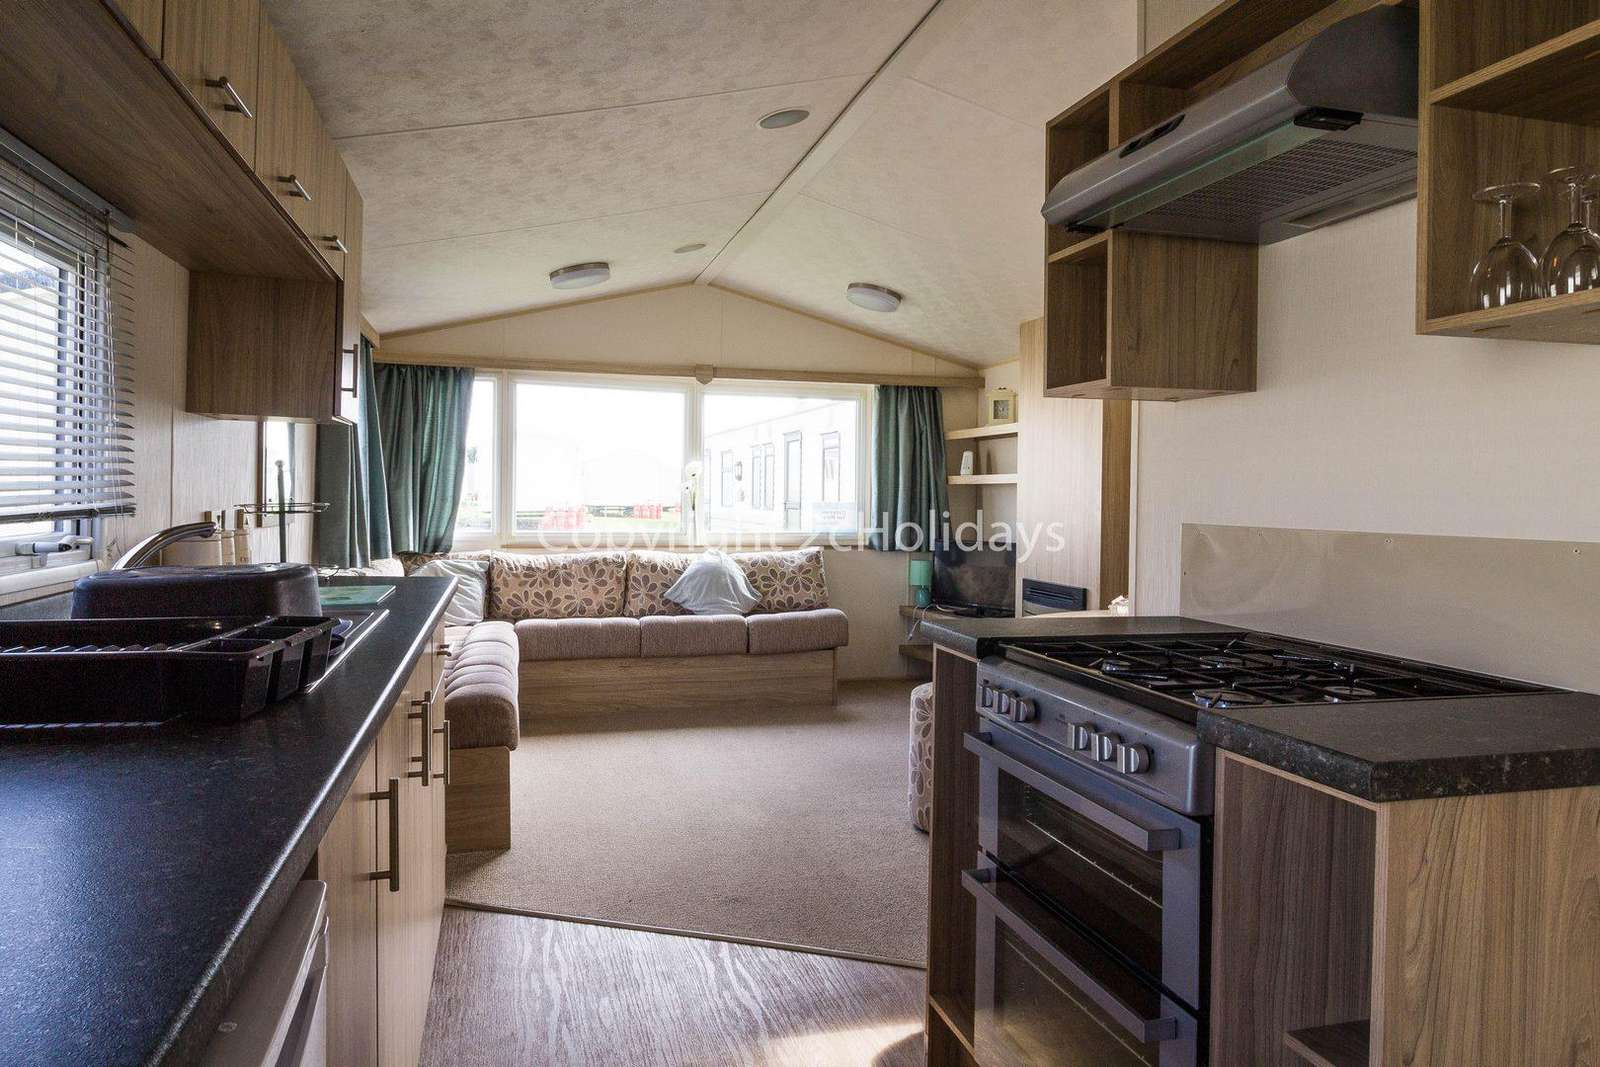 A fully equipped modern kitchen, perfect for self-catering breaks!